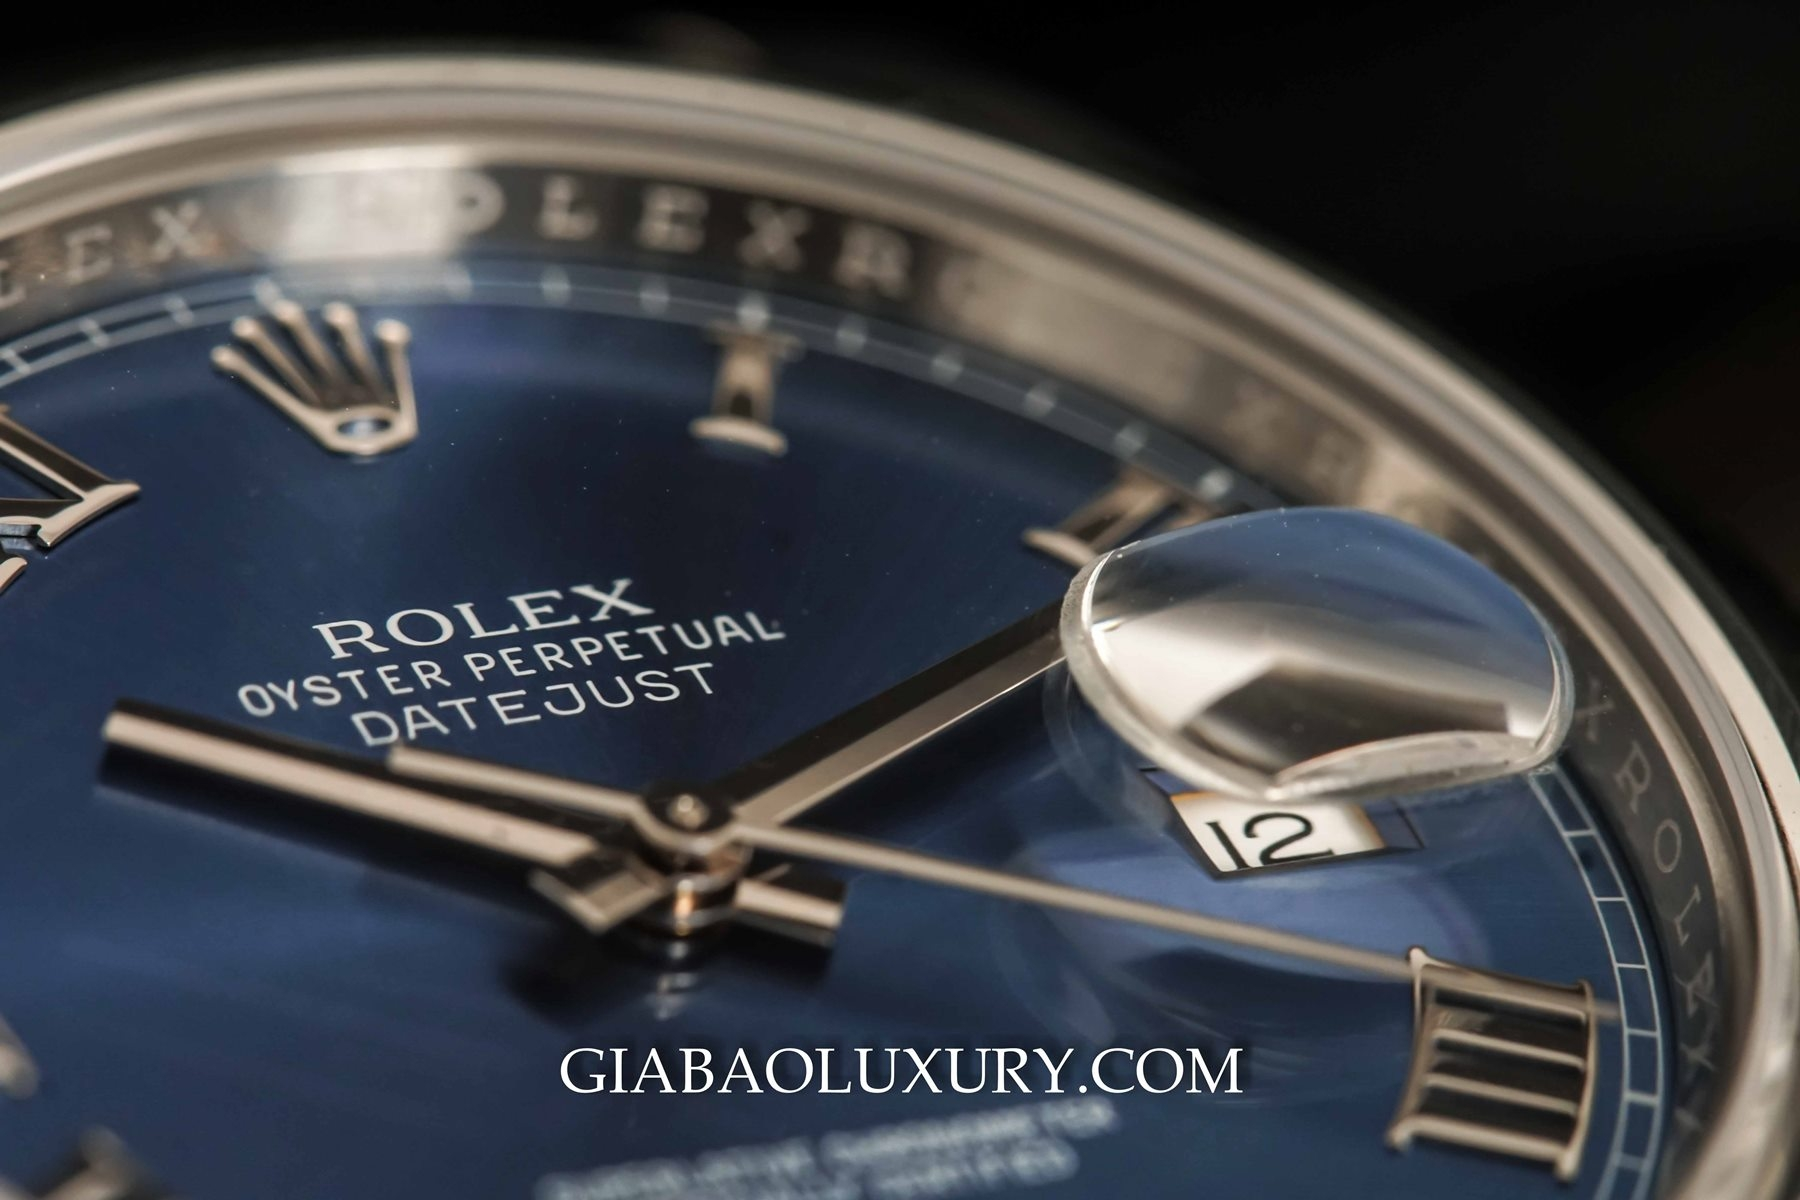 ĐỒNG HỒ ROLEX OYSTER PERPETUAL DATEJUST II 116300